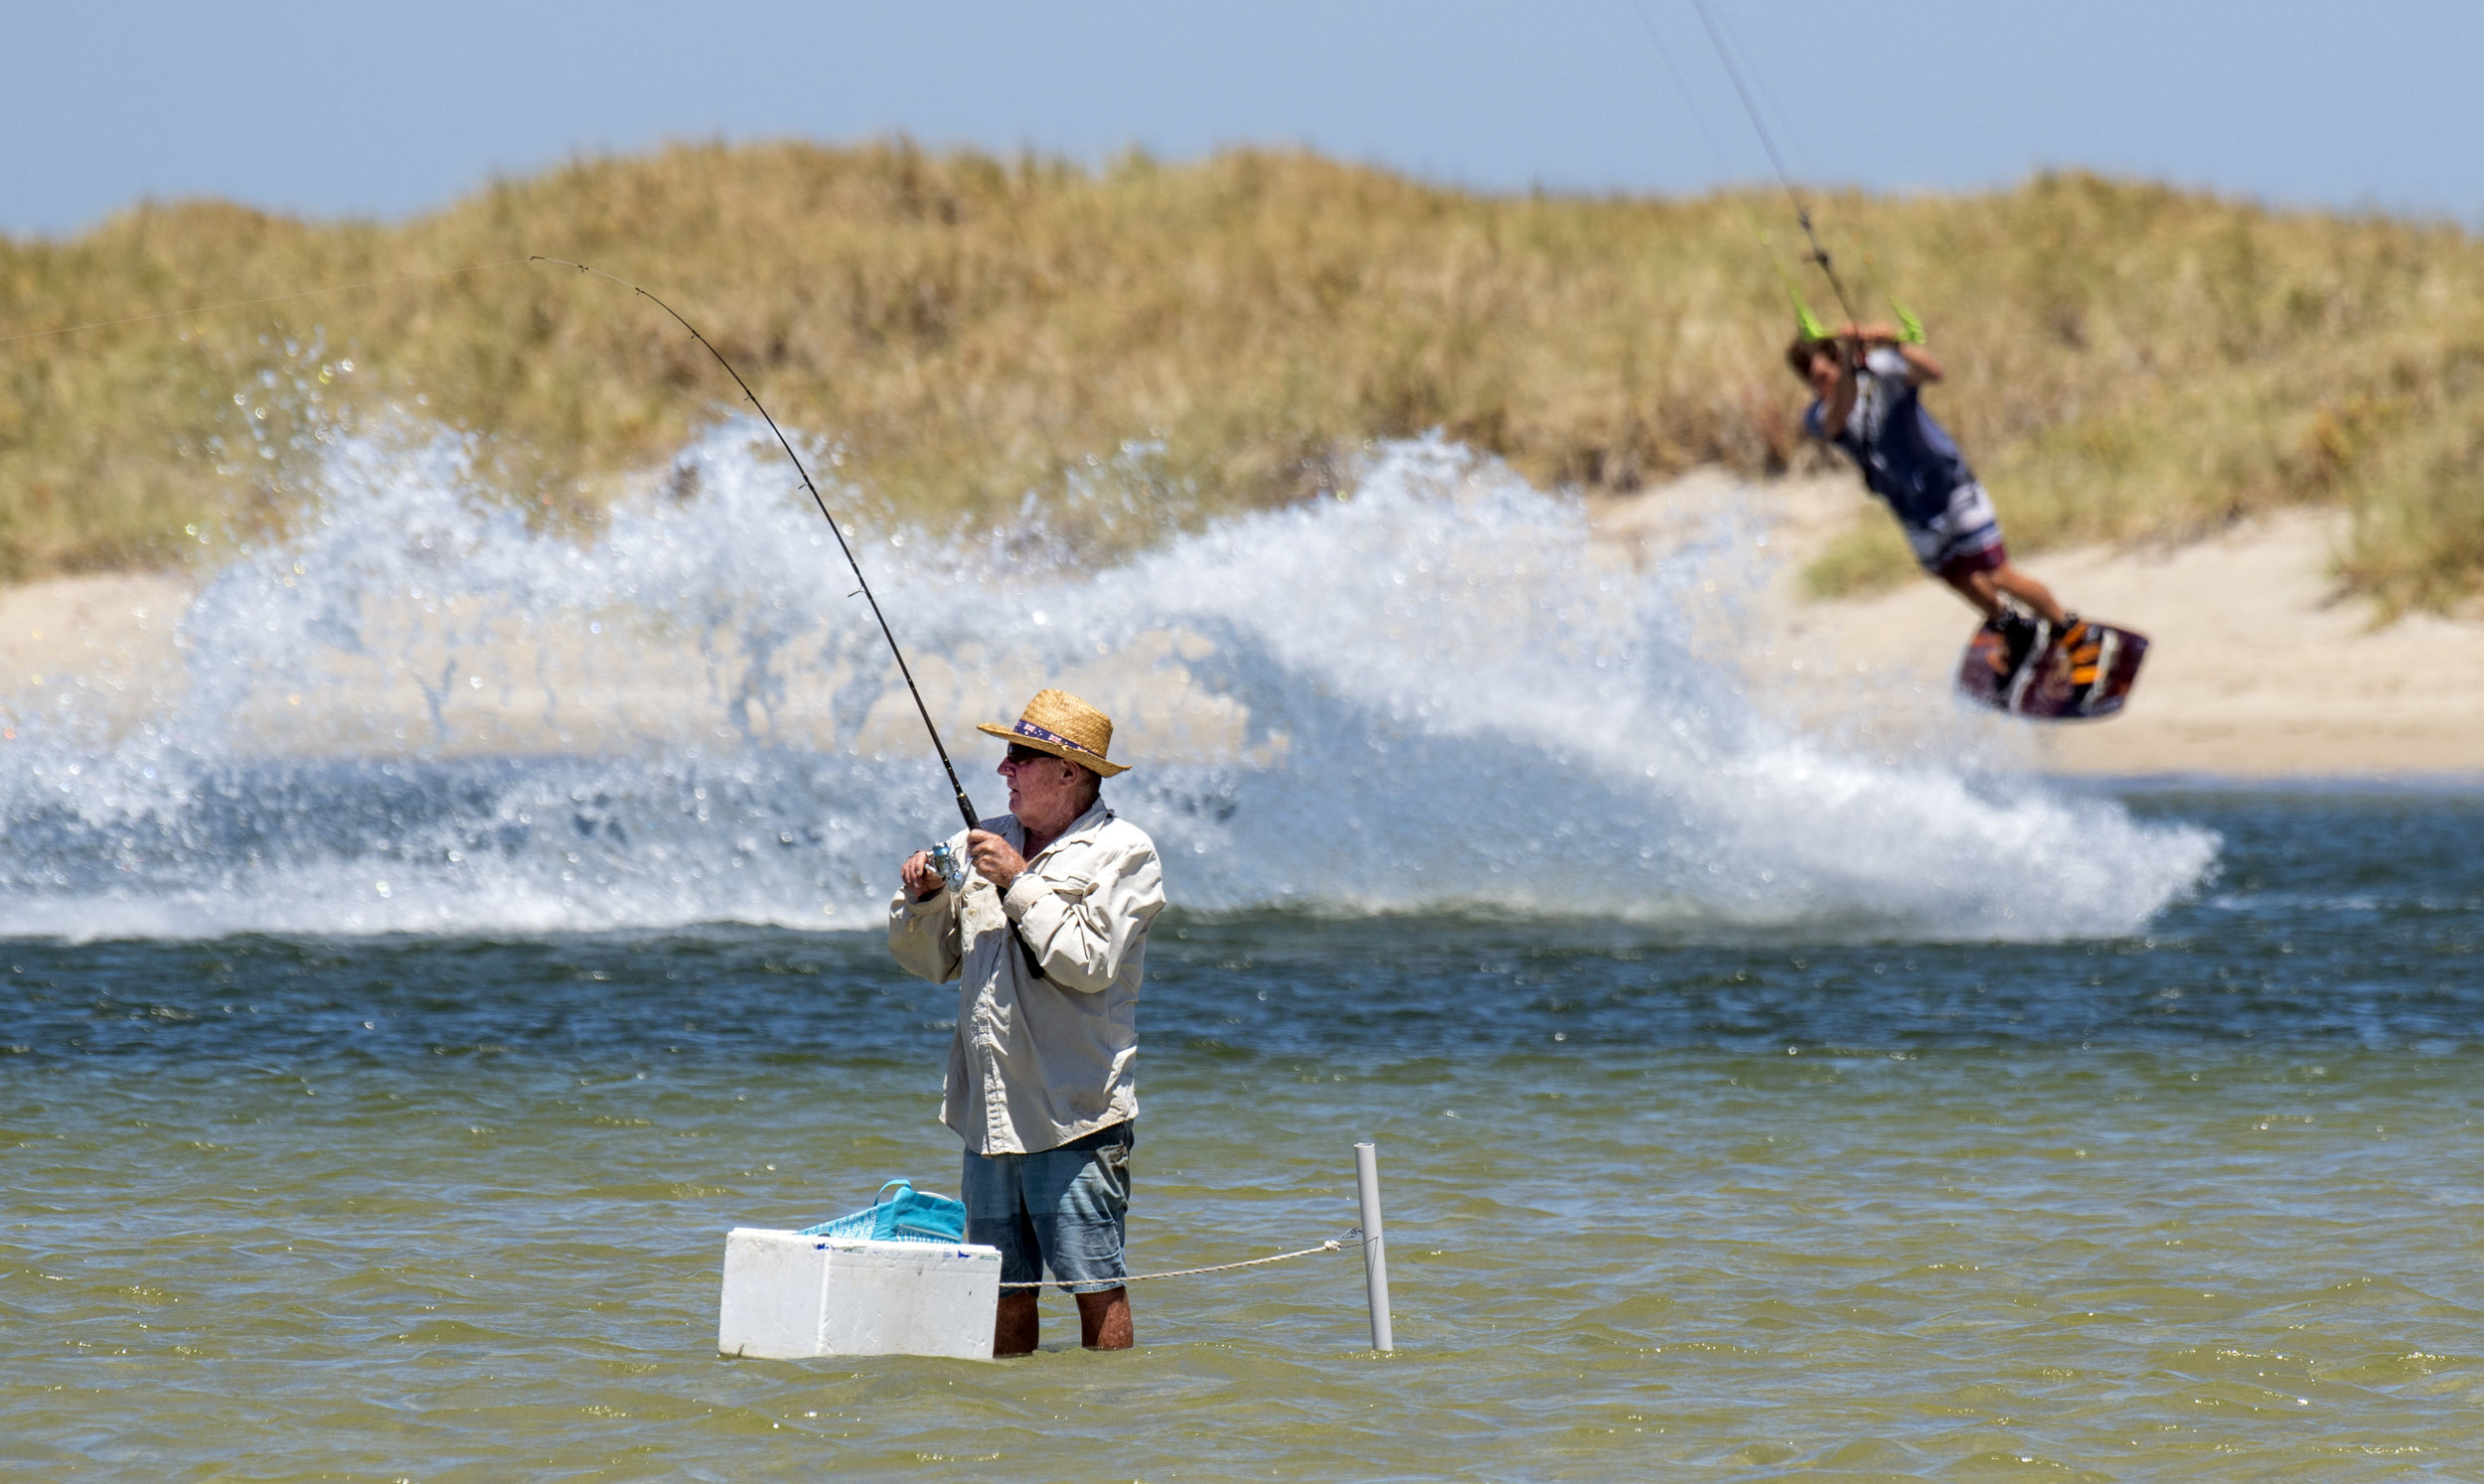 Fishing for Kite - Sports  Feature.jpg